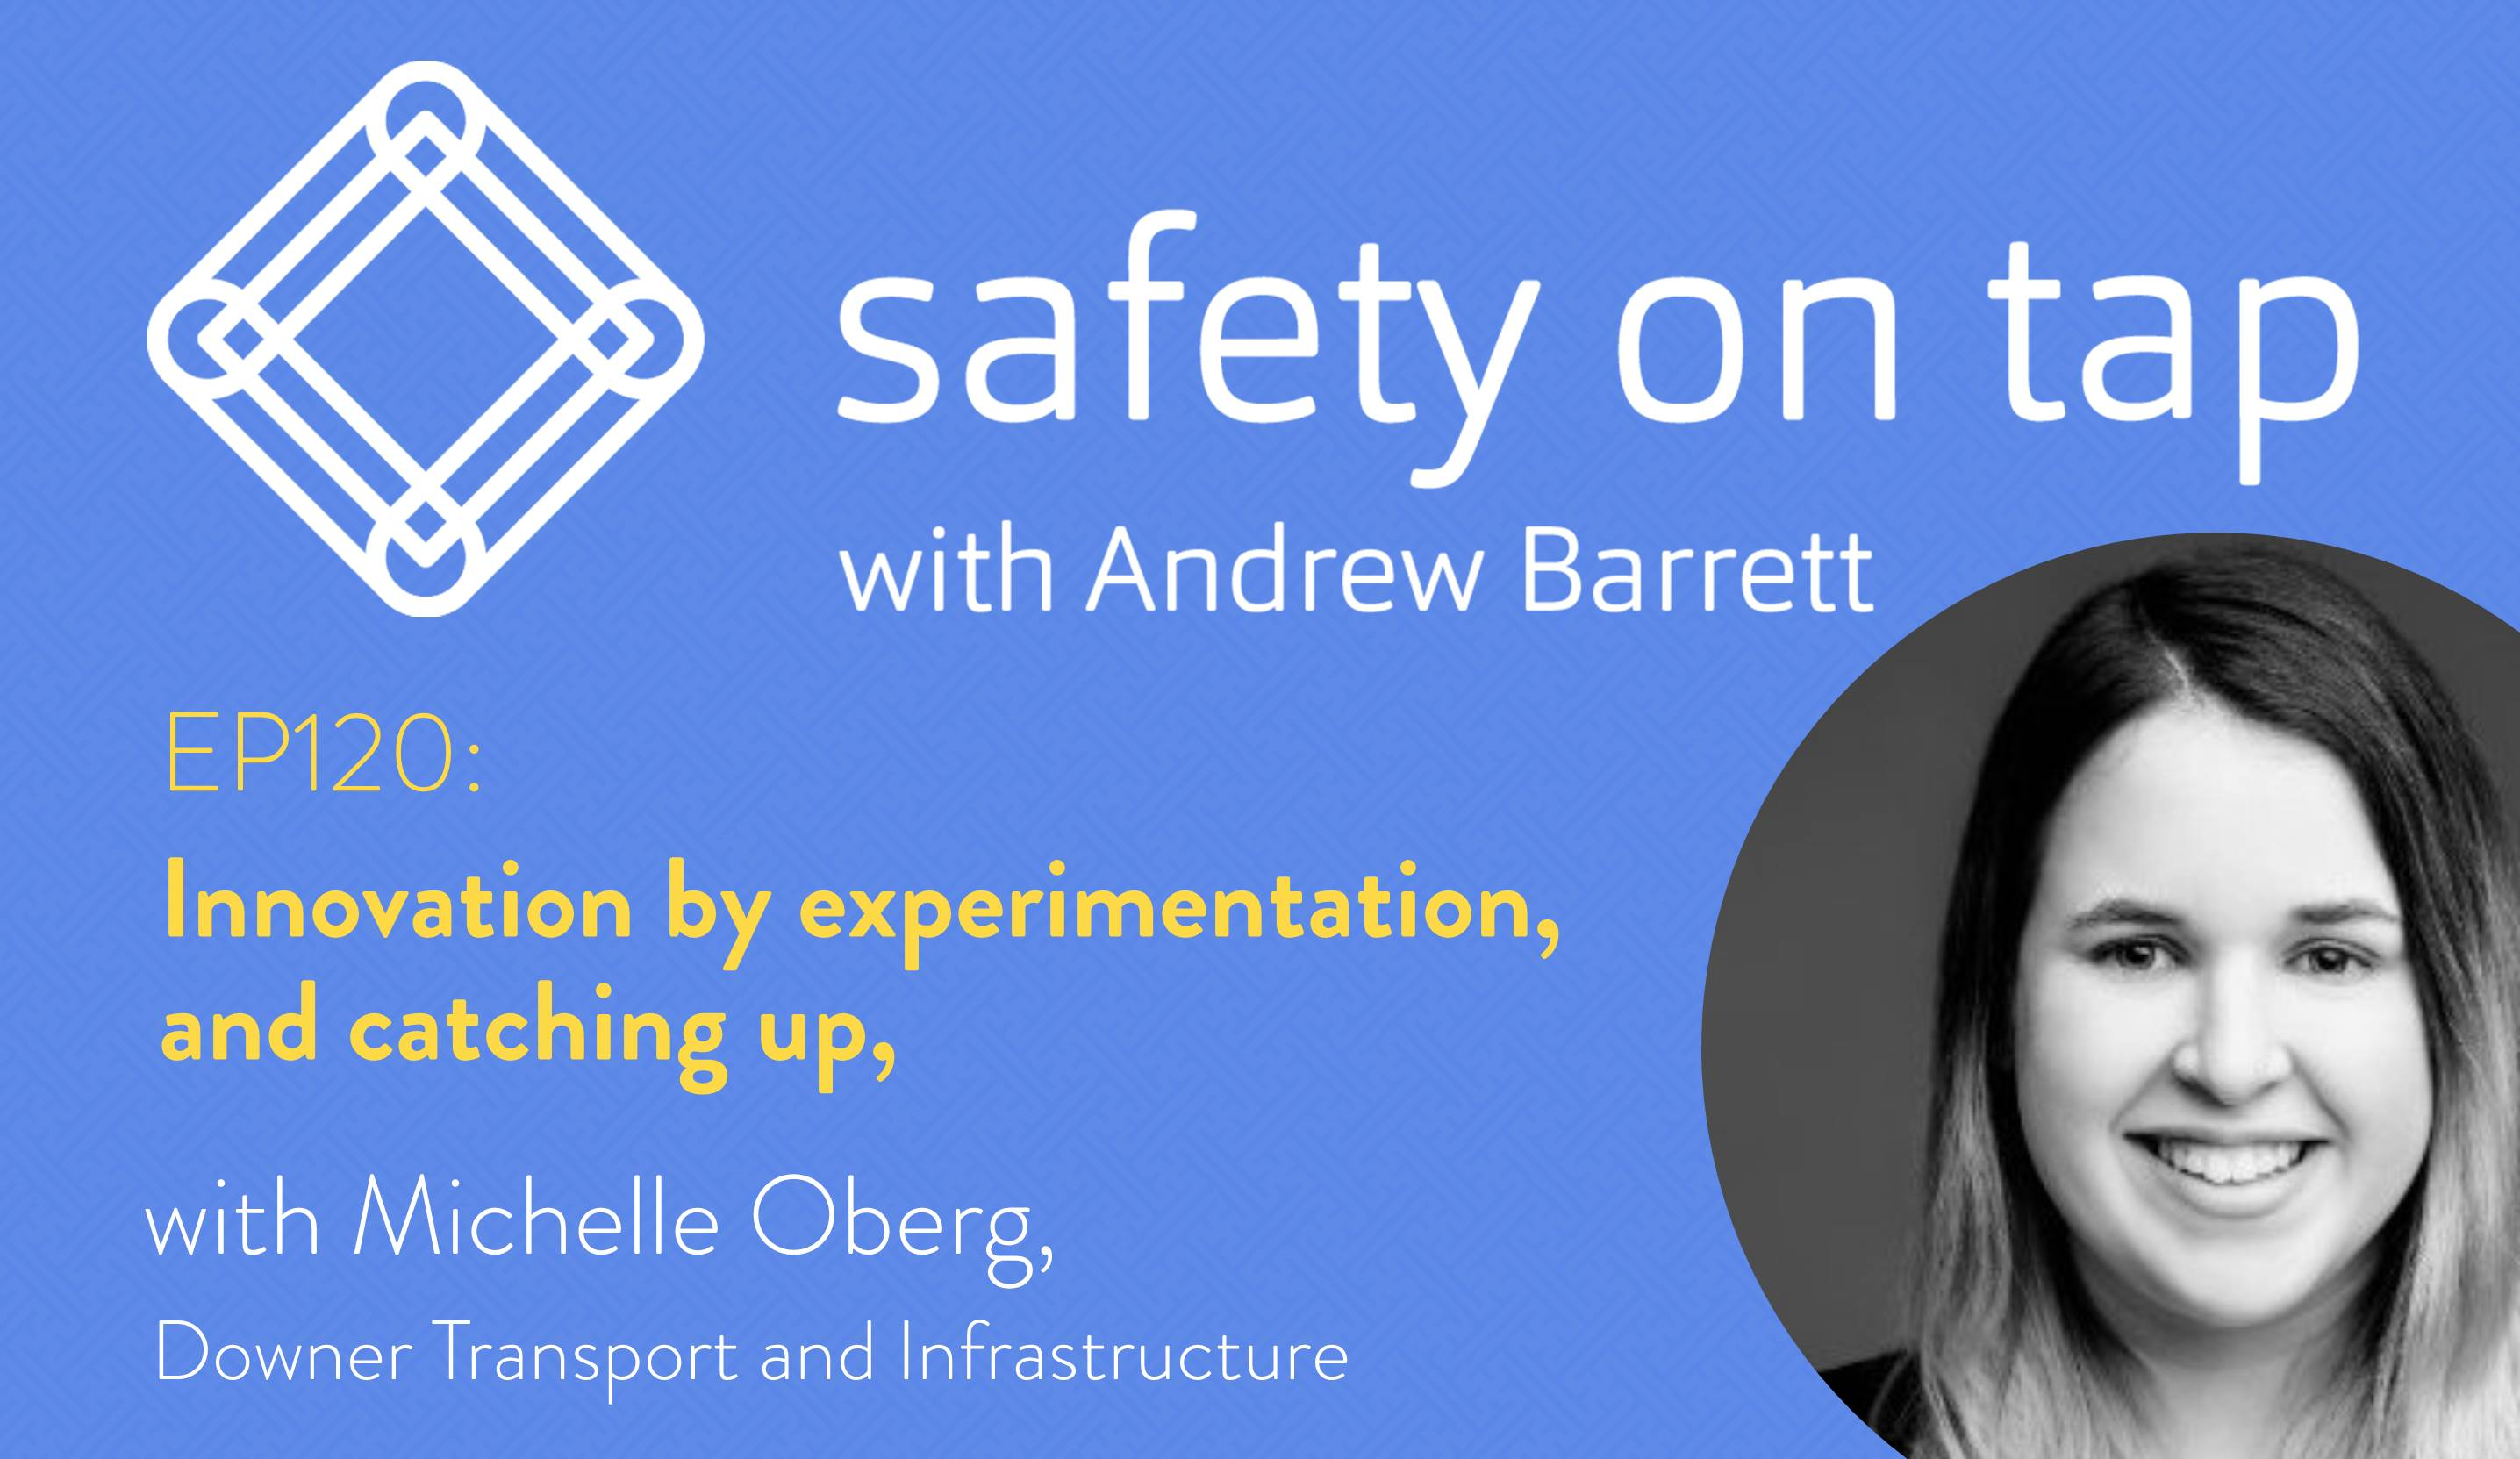 Ep120: Innovation by experimentation, and catching up, with Michelle Oberg, Downer Transport and Infrastructure